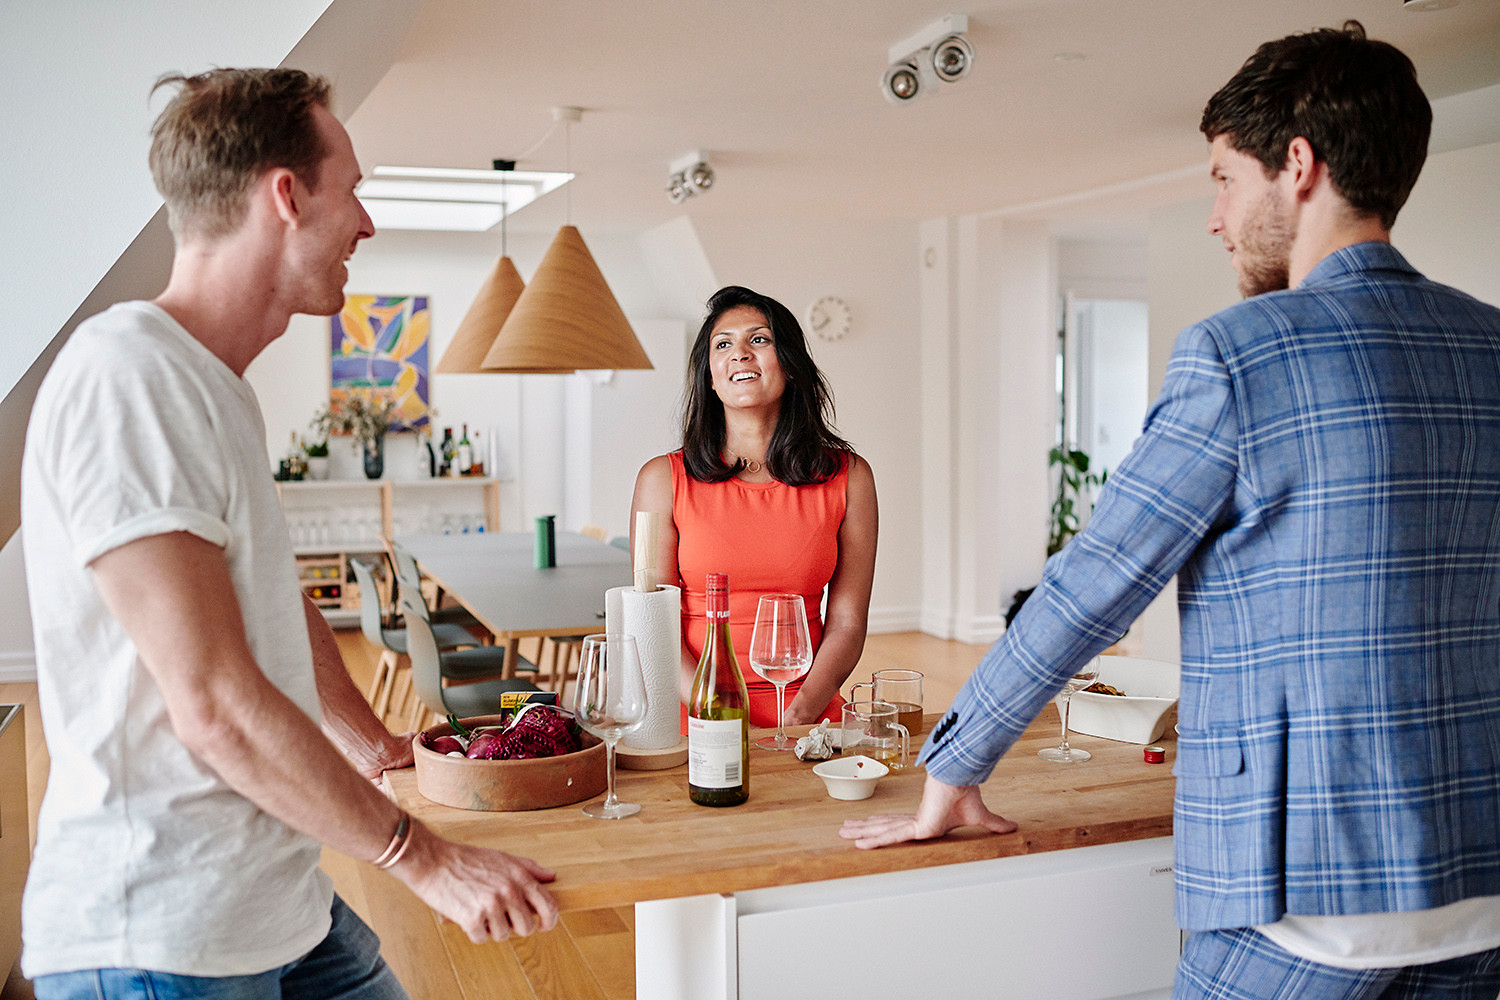 Paul Sephton(L) 28 y.o from South Africa, Saloni Deva(middle) 30 y.o from Sweden and Tim Aardenburg from the Netherlands having a tea and a glass of wine in their shared kitchen in one of lifeX apartments in the Østerbro neighbourhood in Copenhagen.